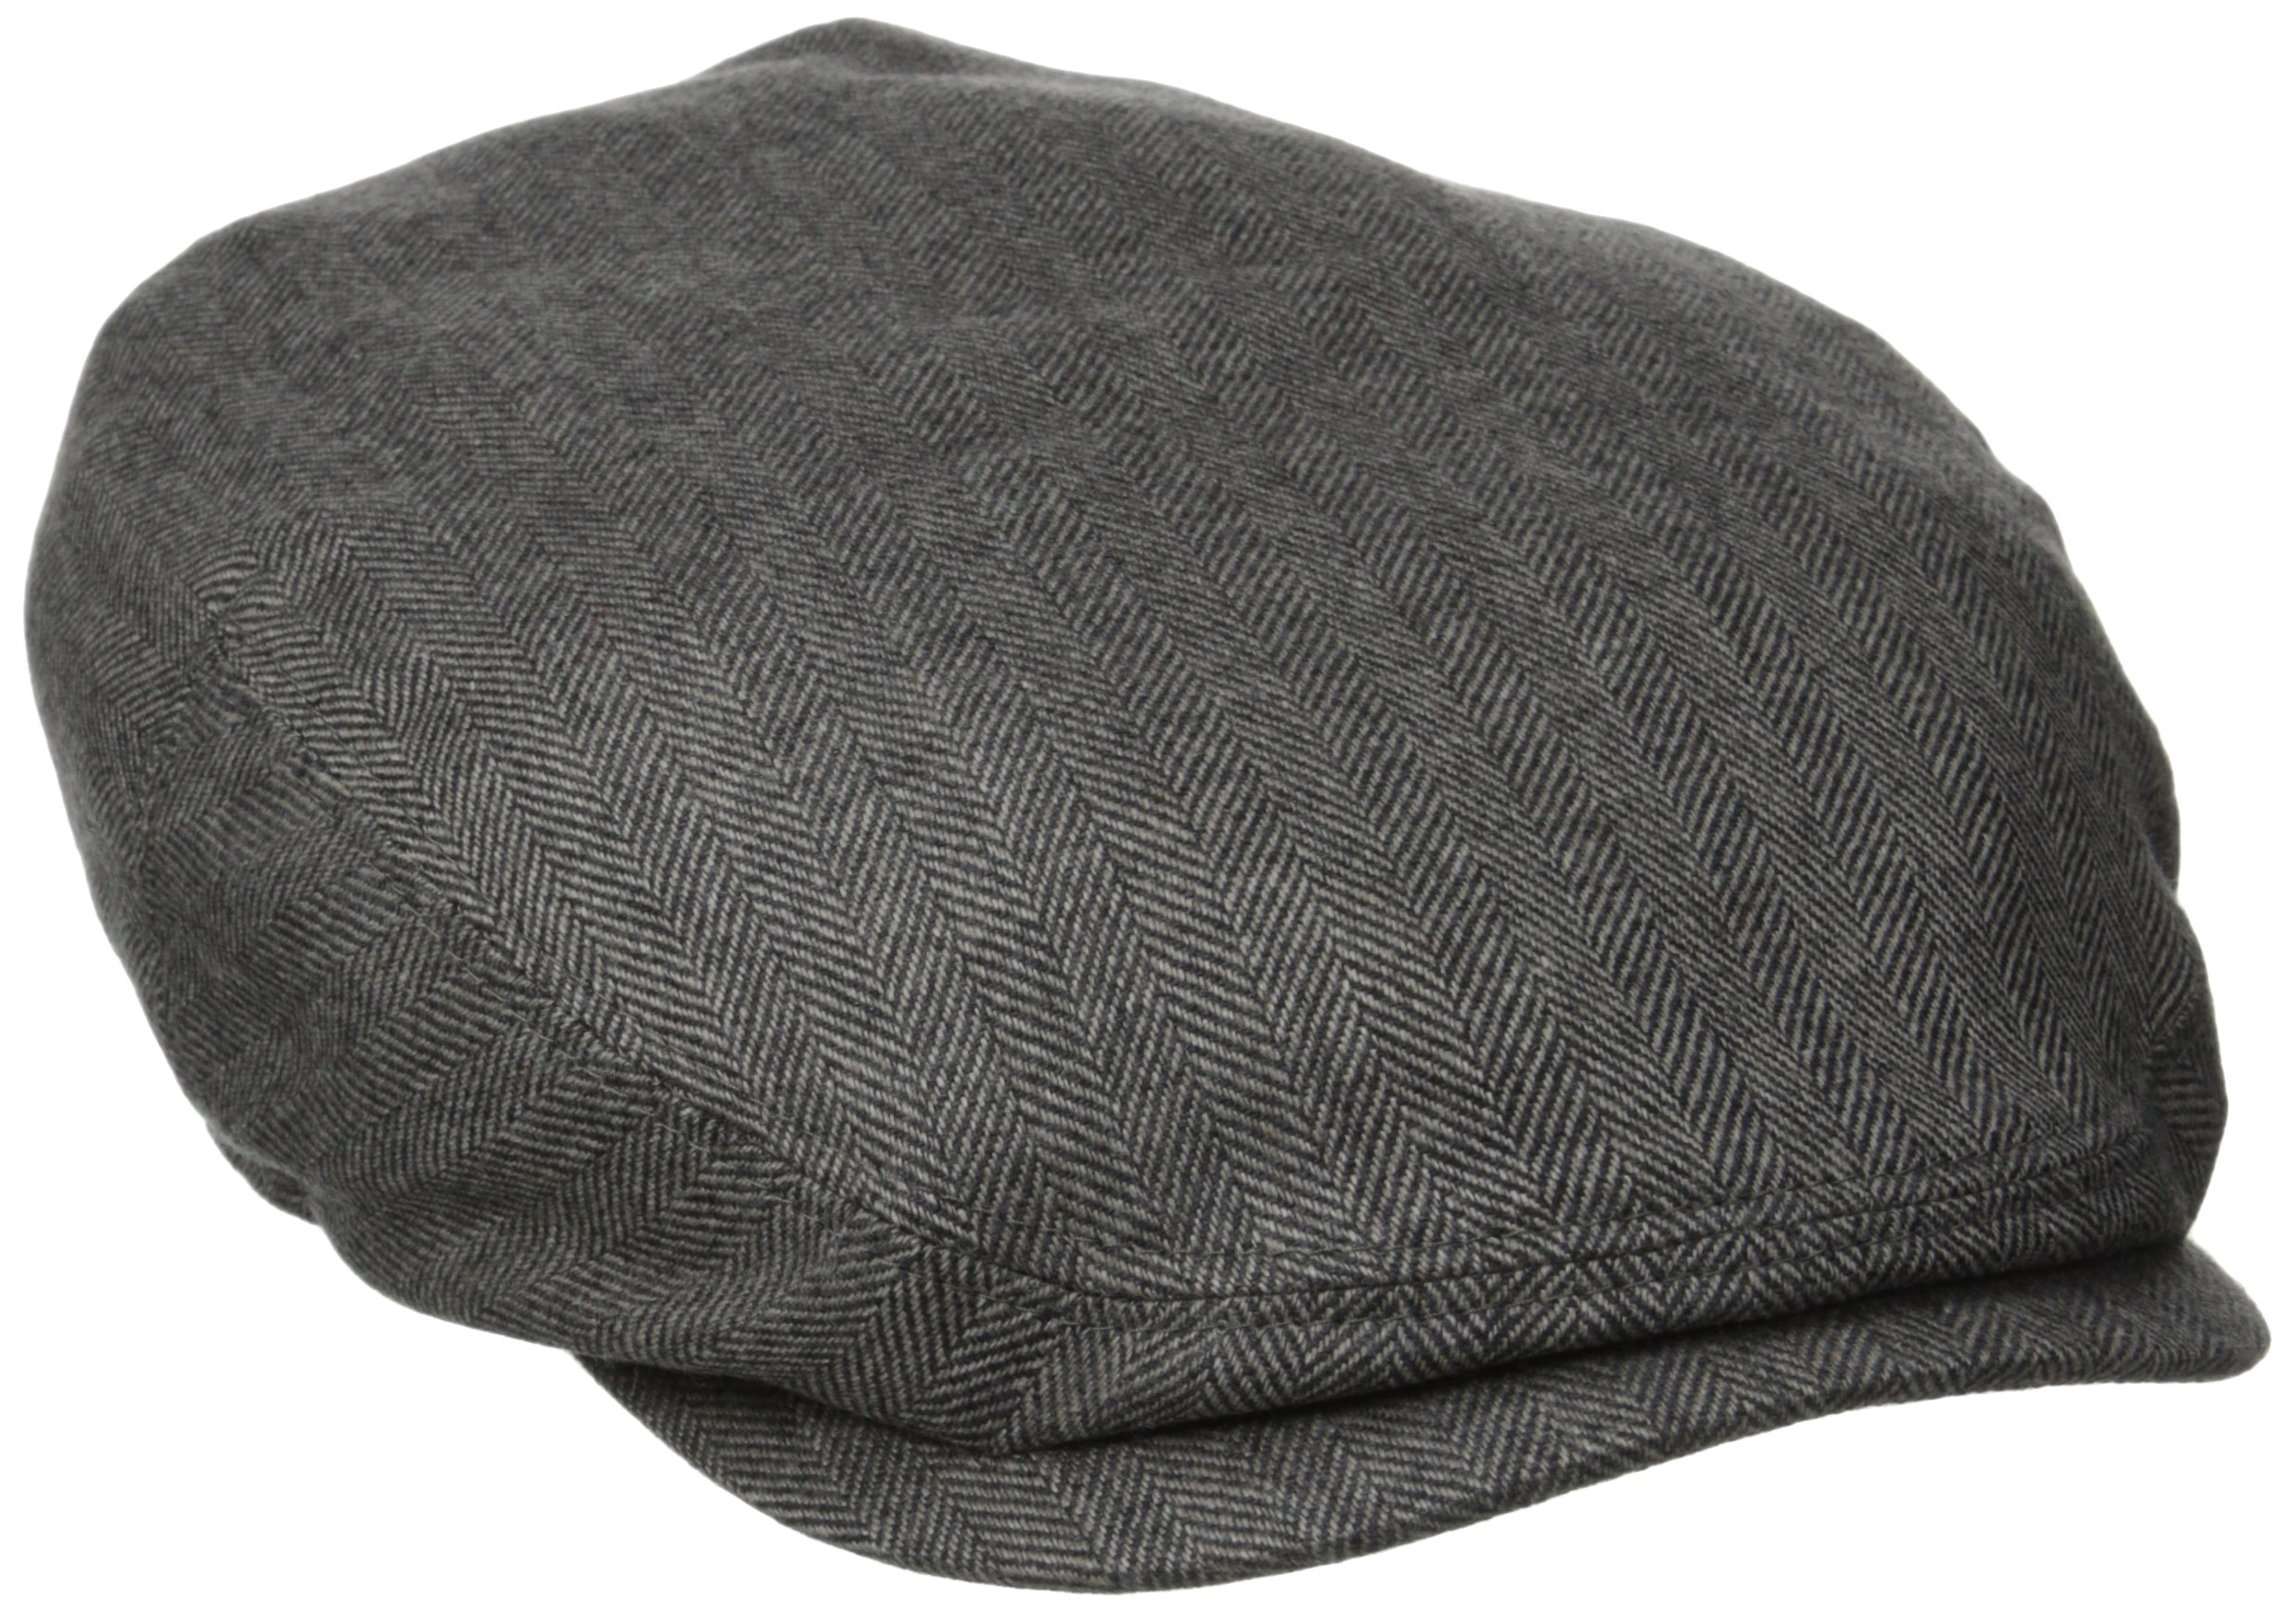 Stetson Men's Cashmere Silk Blend Ivy Cap with Lining, Gray, Large